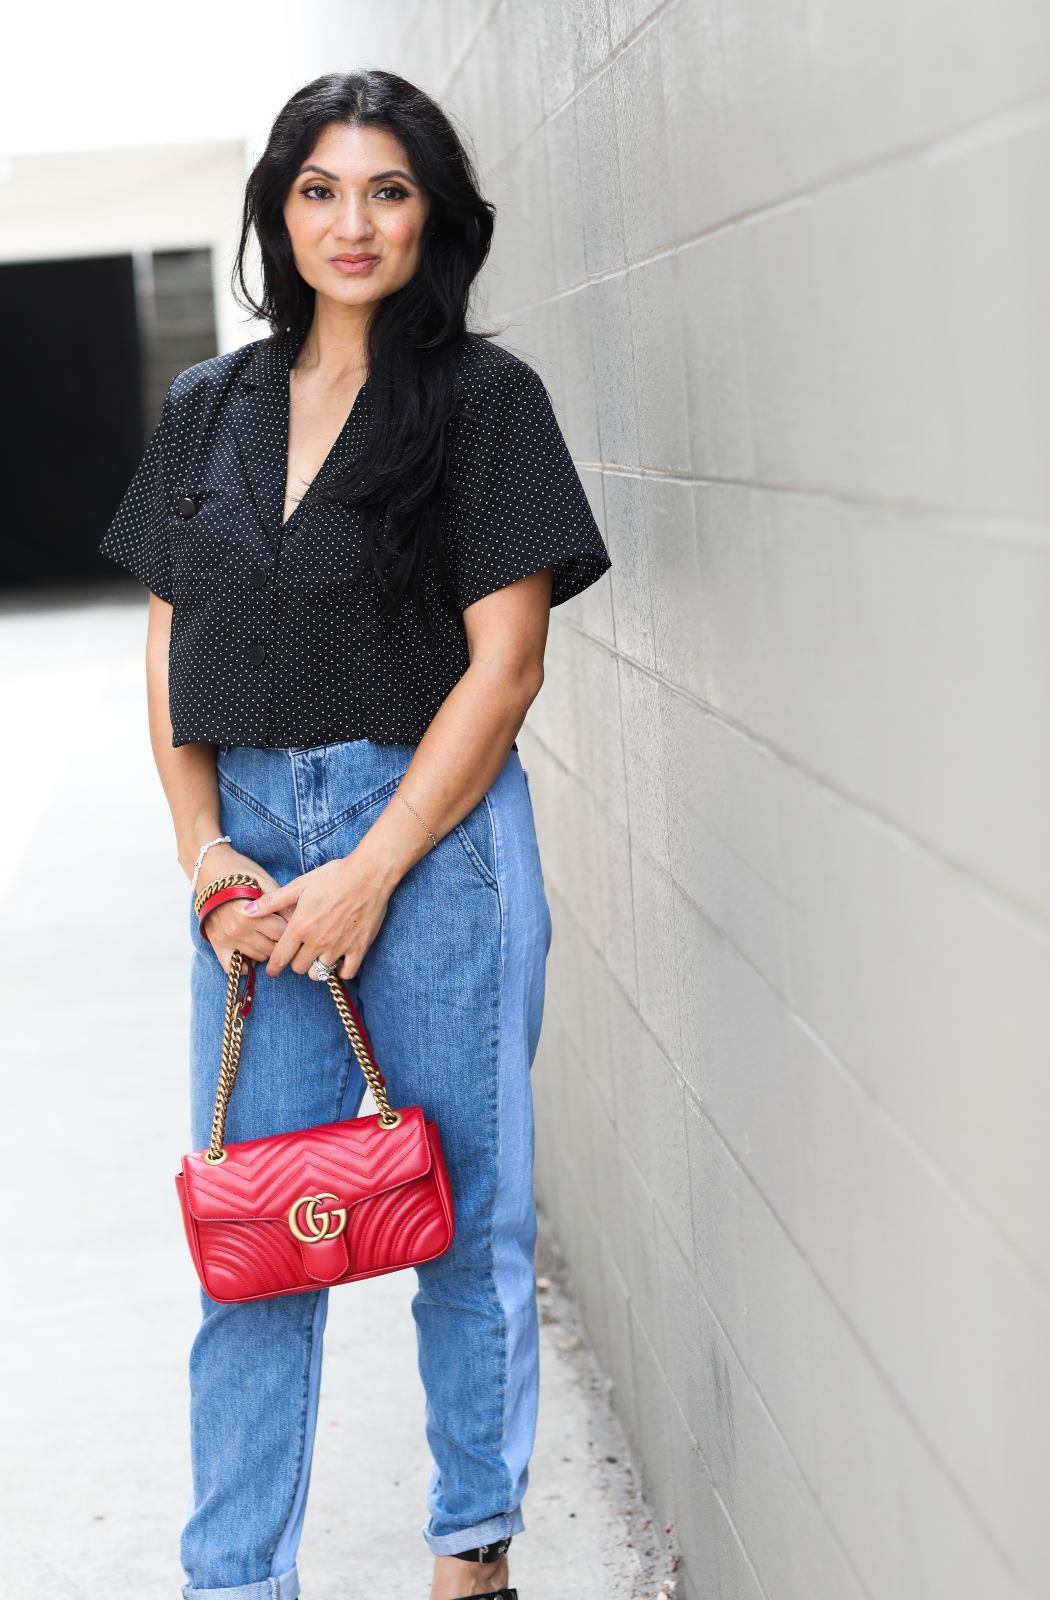 Debbie Savage Orange County California Fashion Blogger Nasty Gal Opposites Attract Two-Tone Mom Jeans